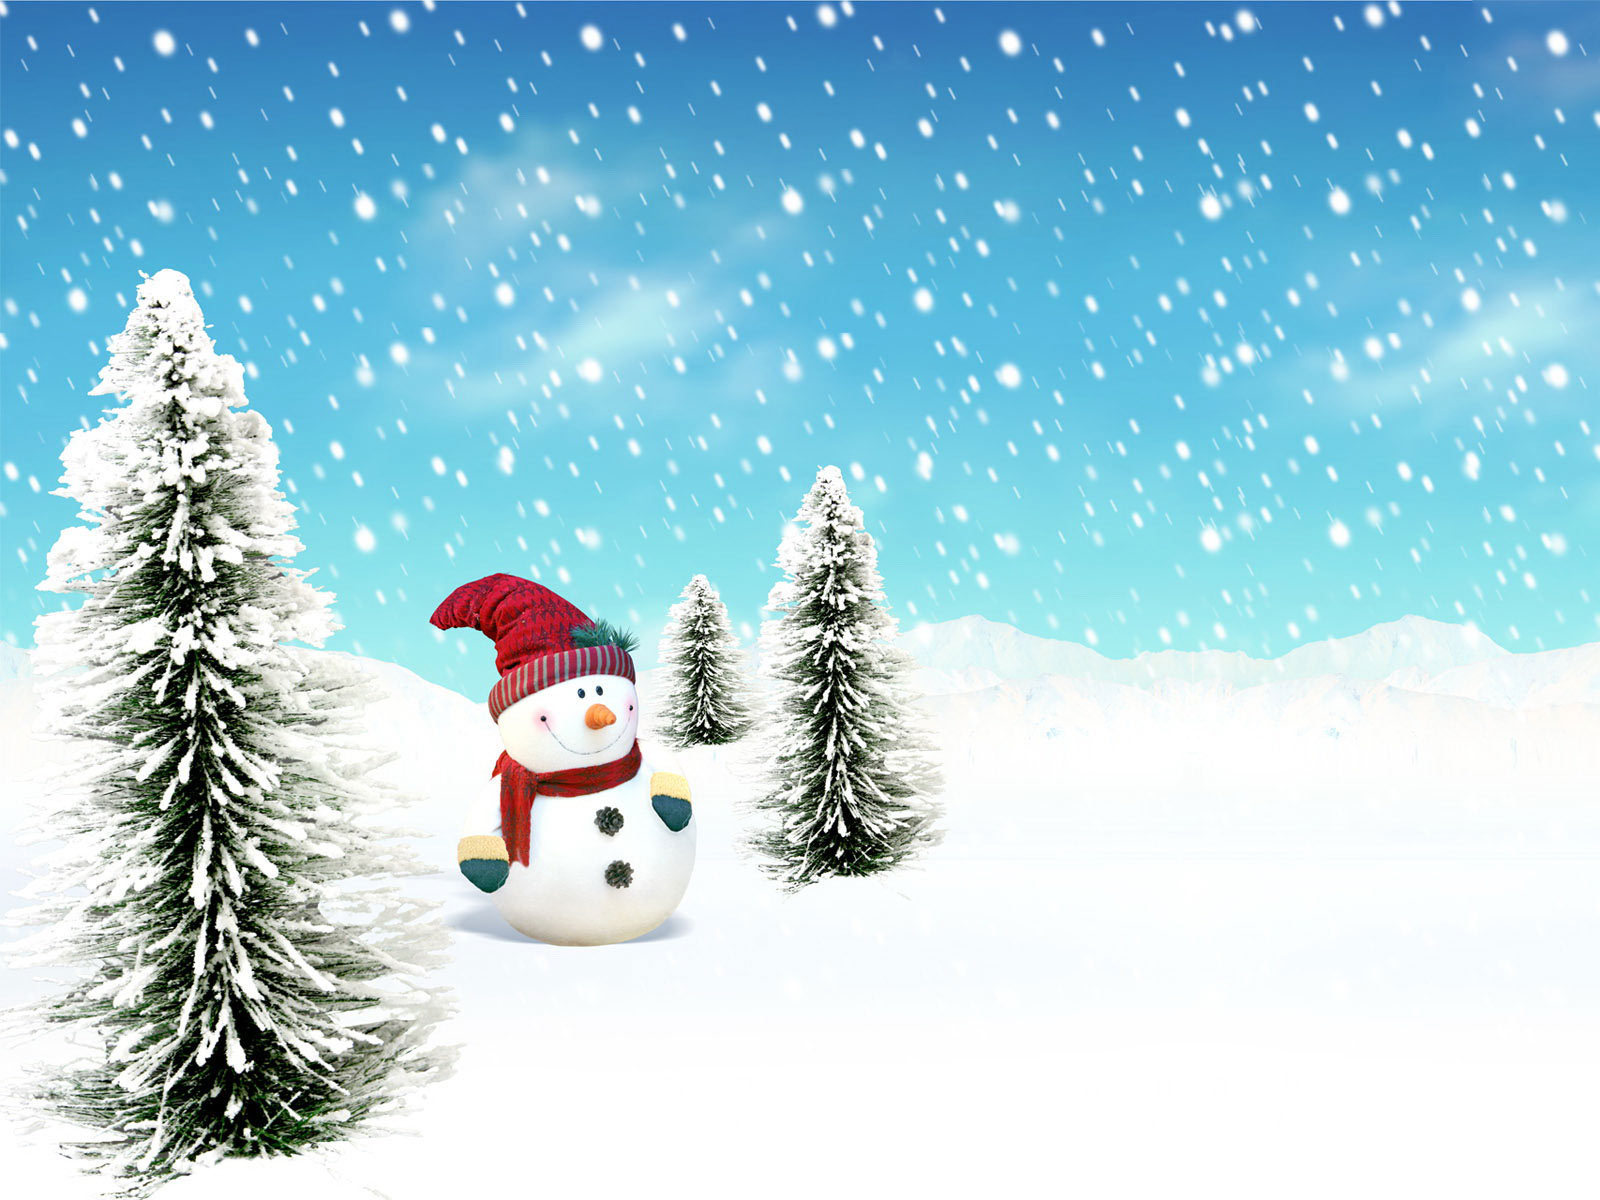 Winter Snowman Picture Images amp Pictures   Becuo 1600x1200